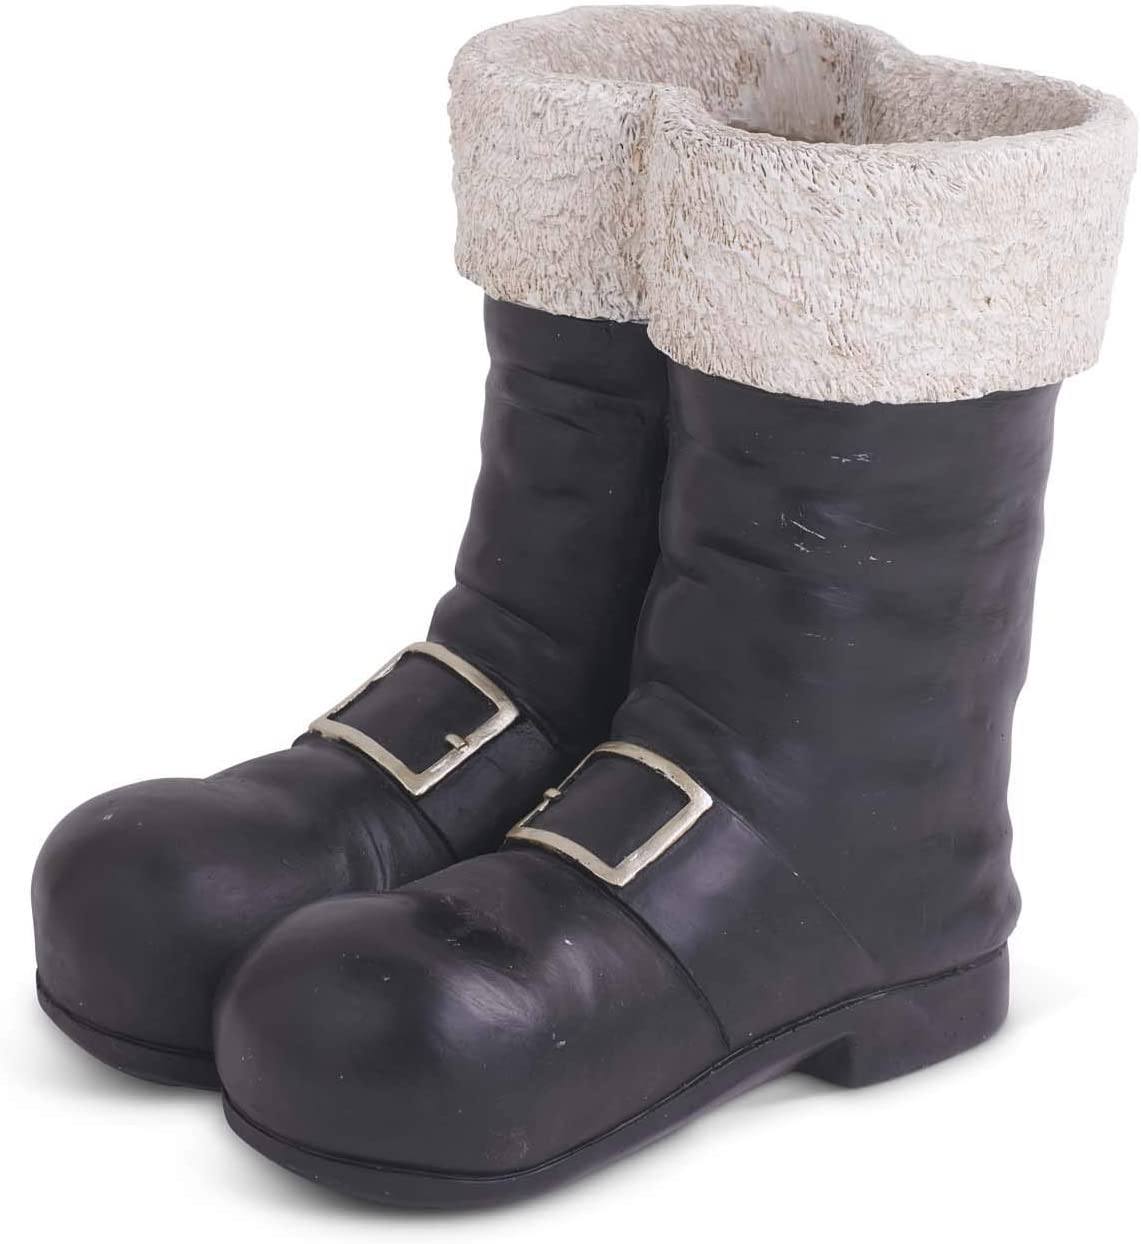 K&K Interiors 53777A 10 Inch Black and White Resin Santa Boots Container